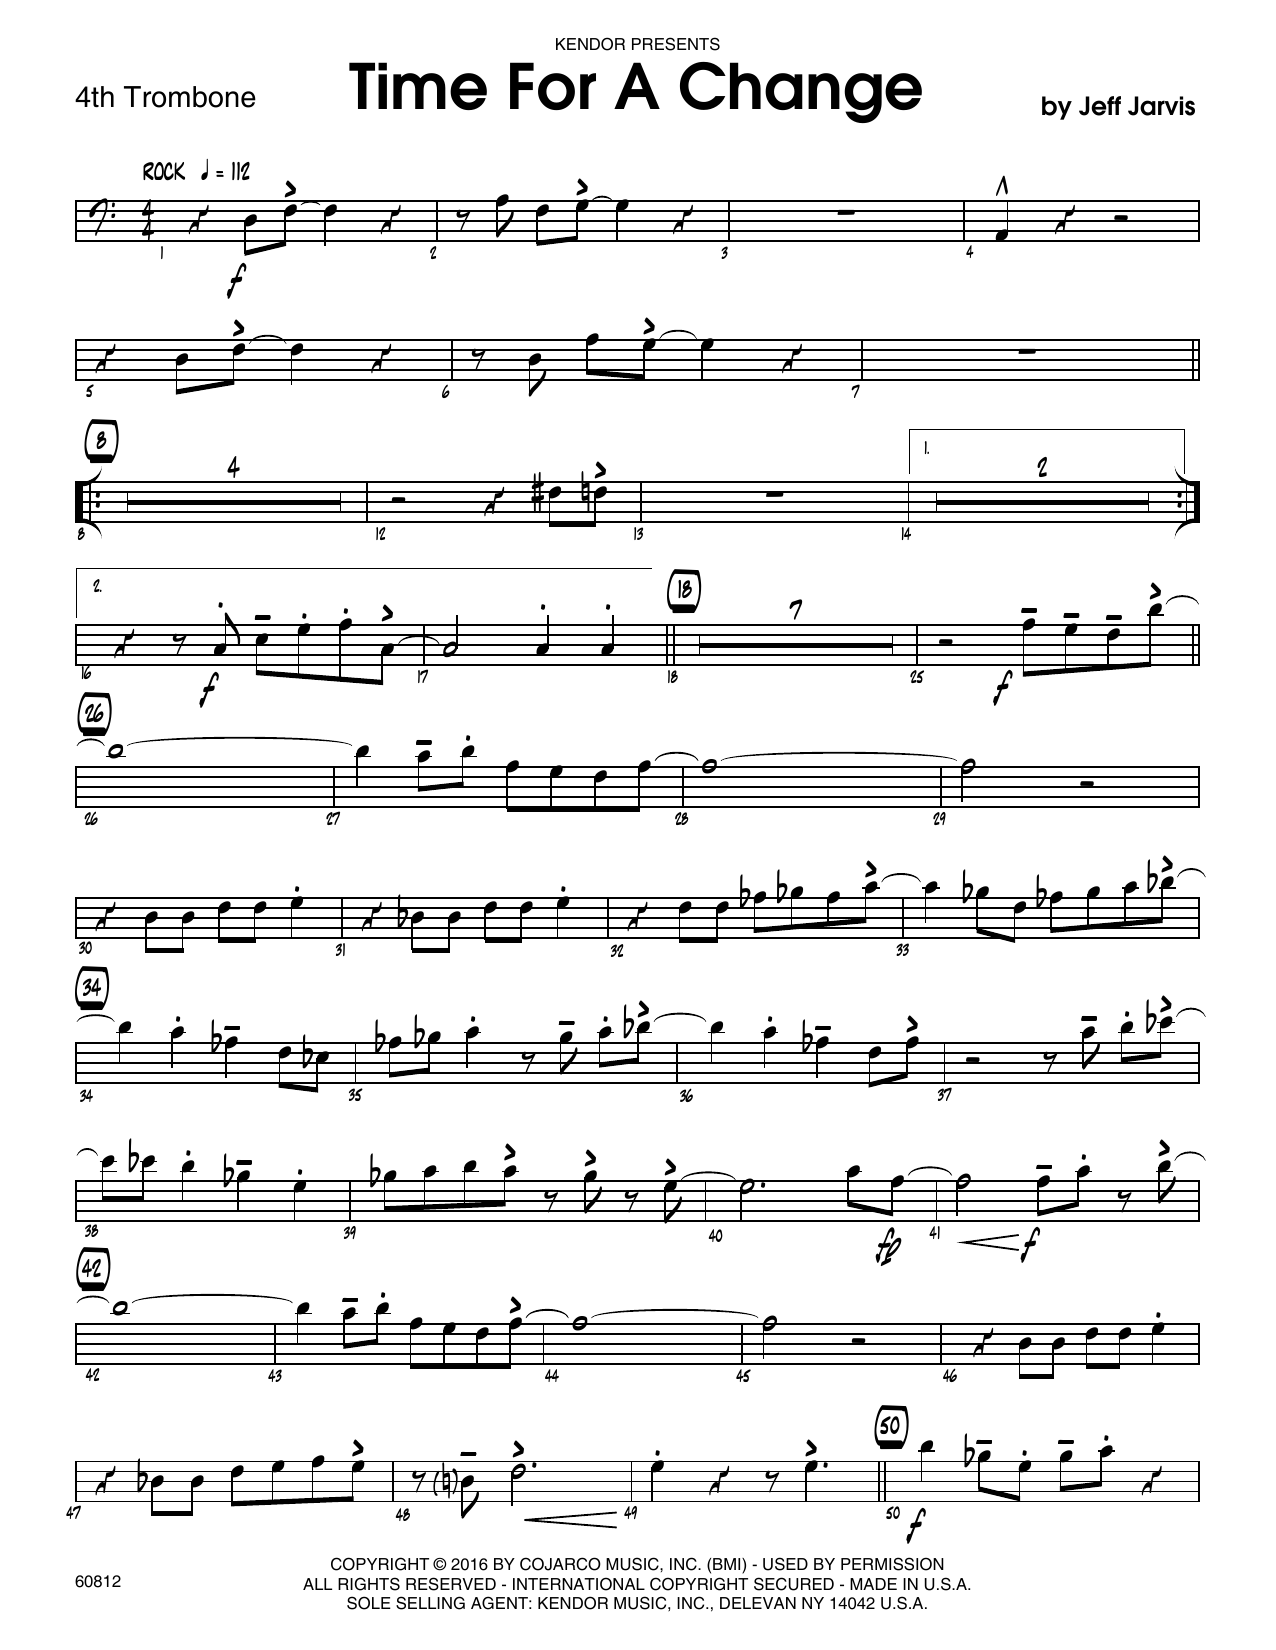 Time For A Change - 4th Trombone Sheet Music